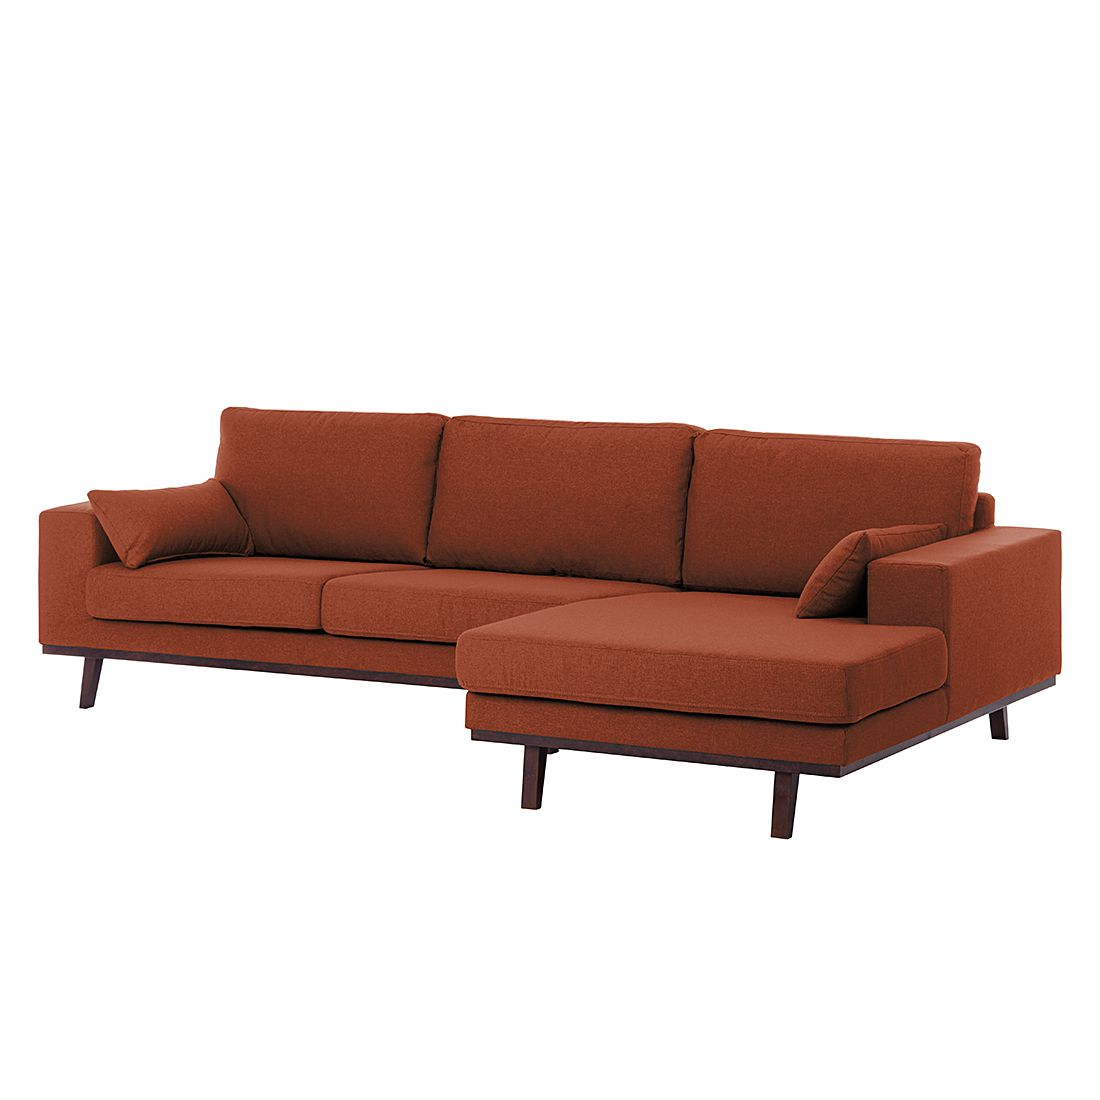 233 guide d 39 achat for Ecksofa terracotta